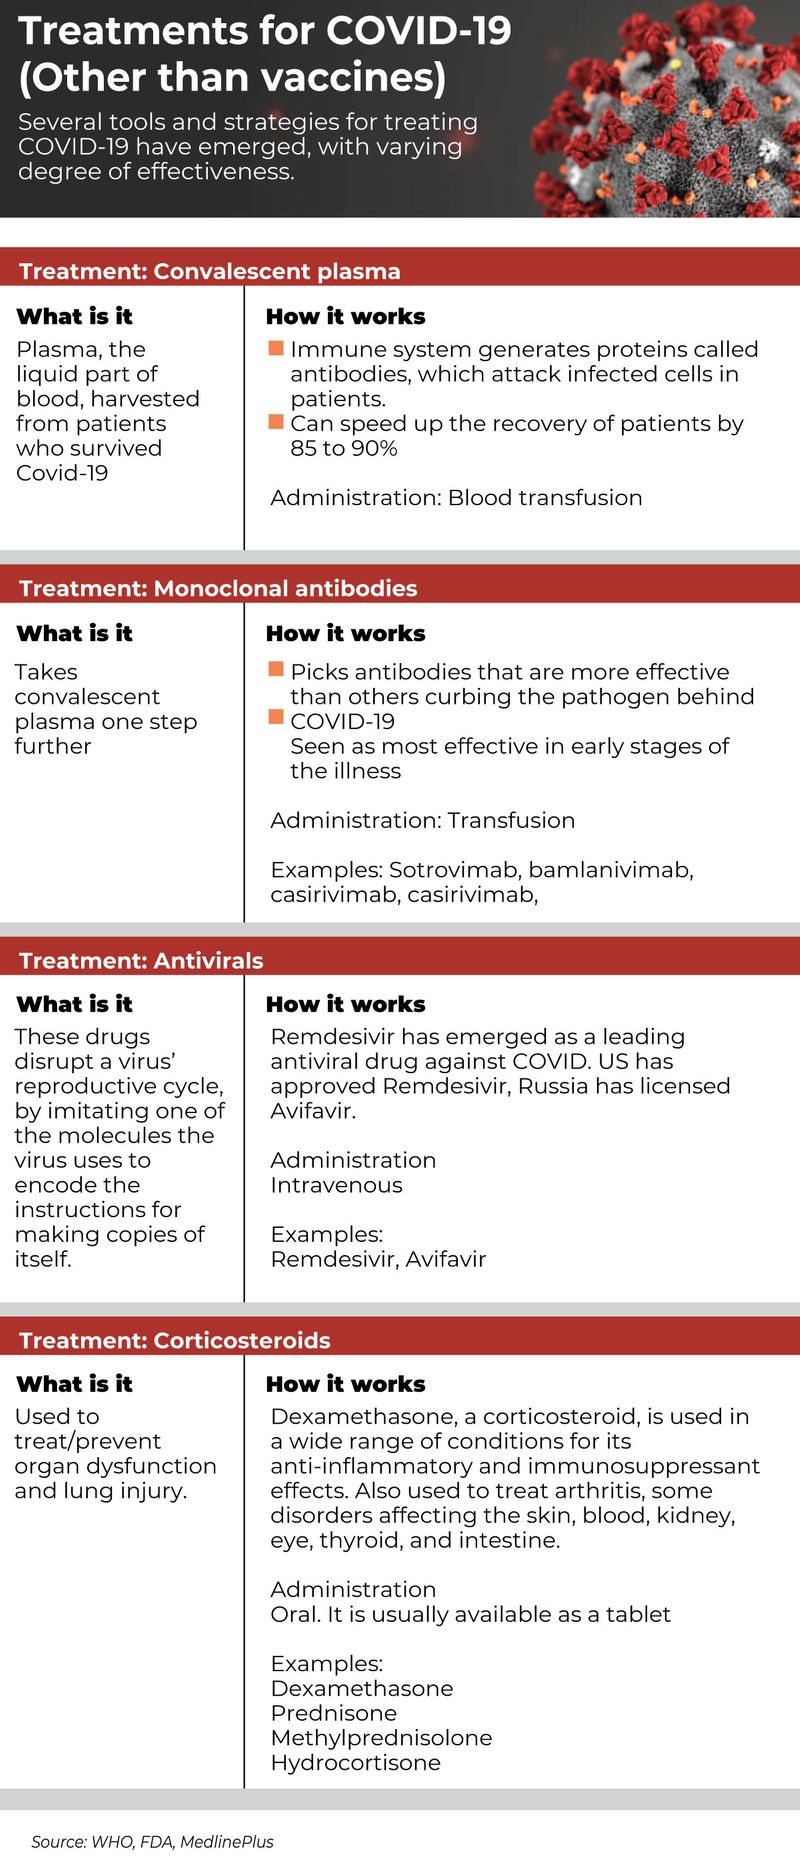 Covid treatments others than vaccines